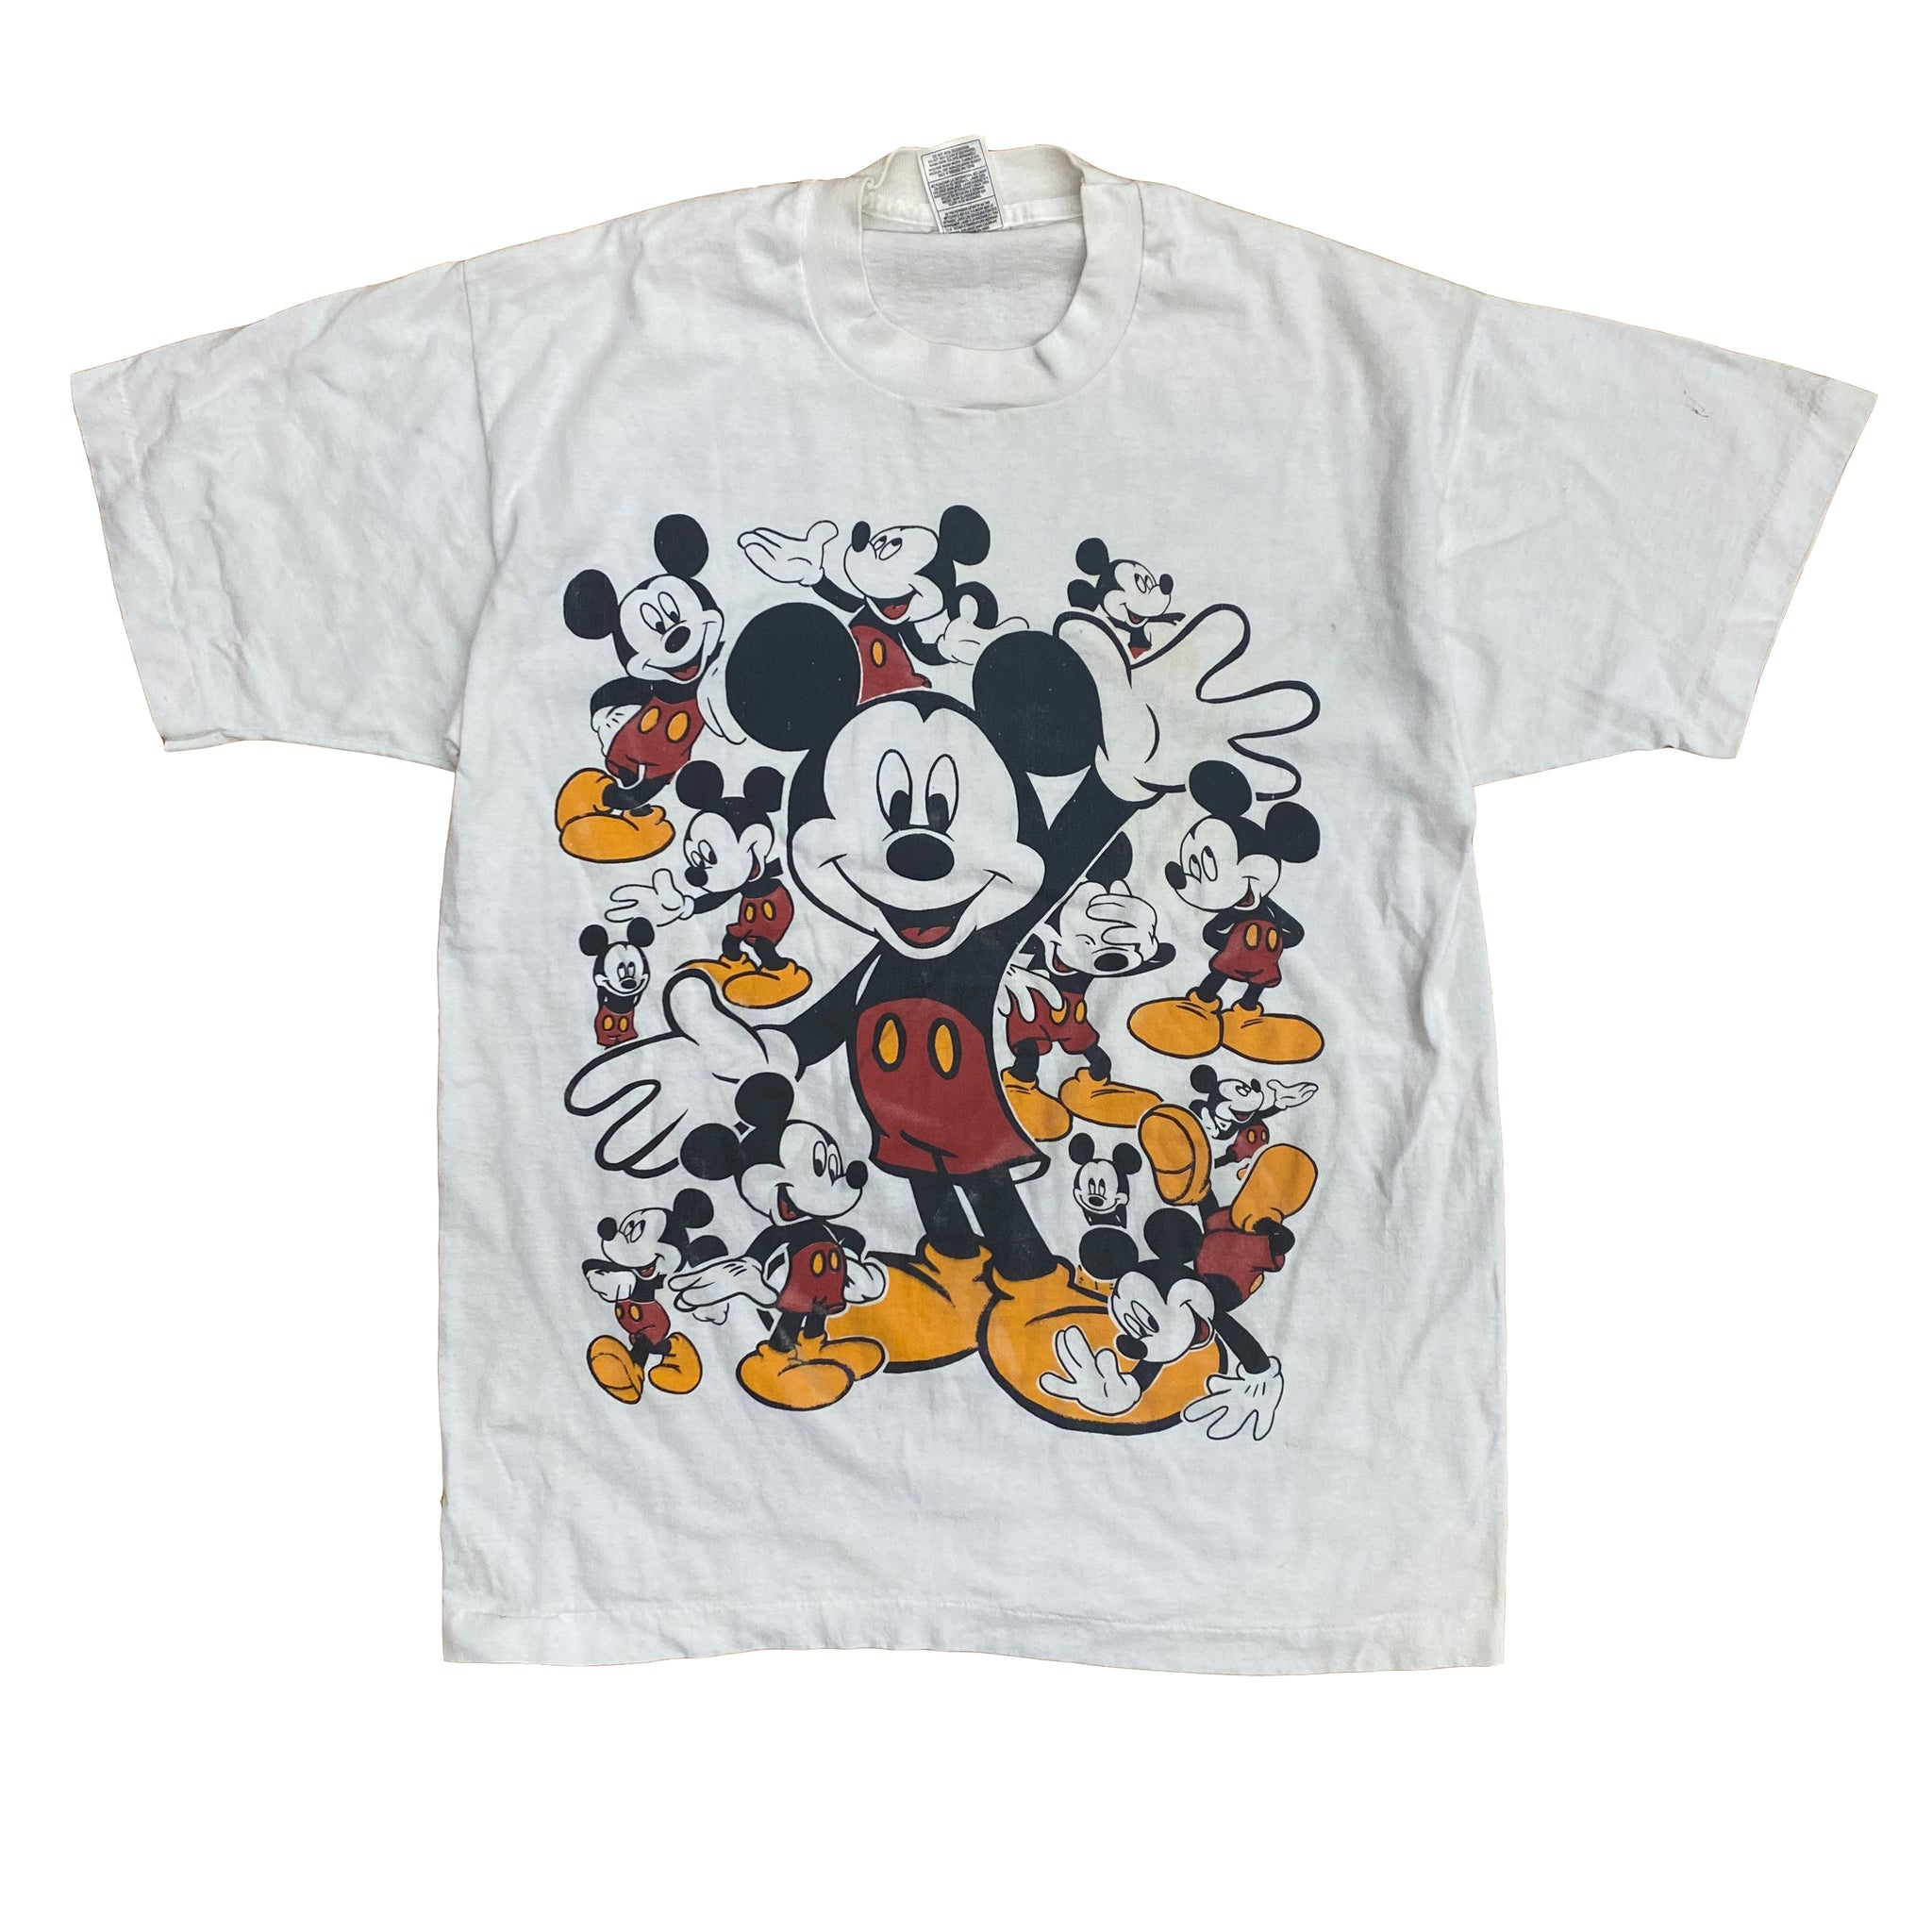 Mickey Pieces - M - VTG 90s